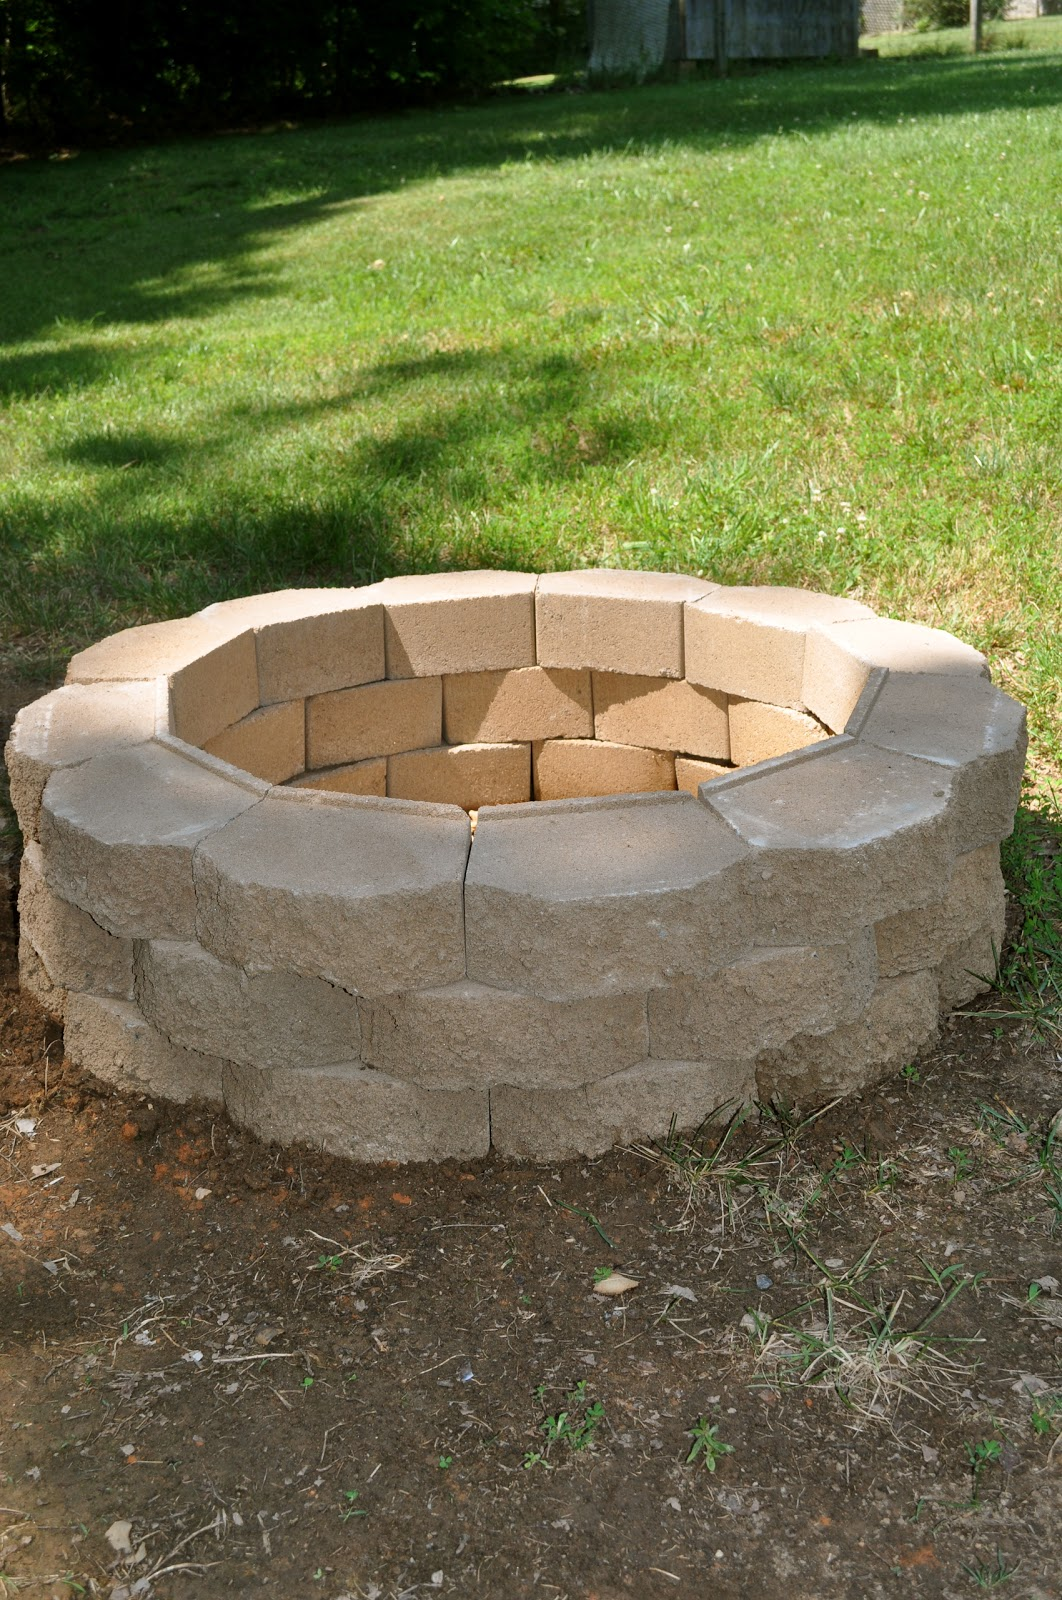 salty tales diy fire pit. Black Bedroom Furniture Sets. Home Design Ideas